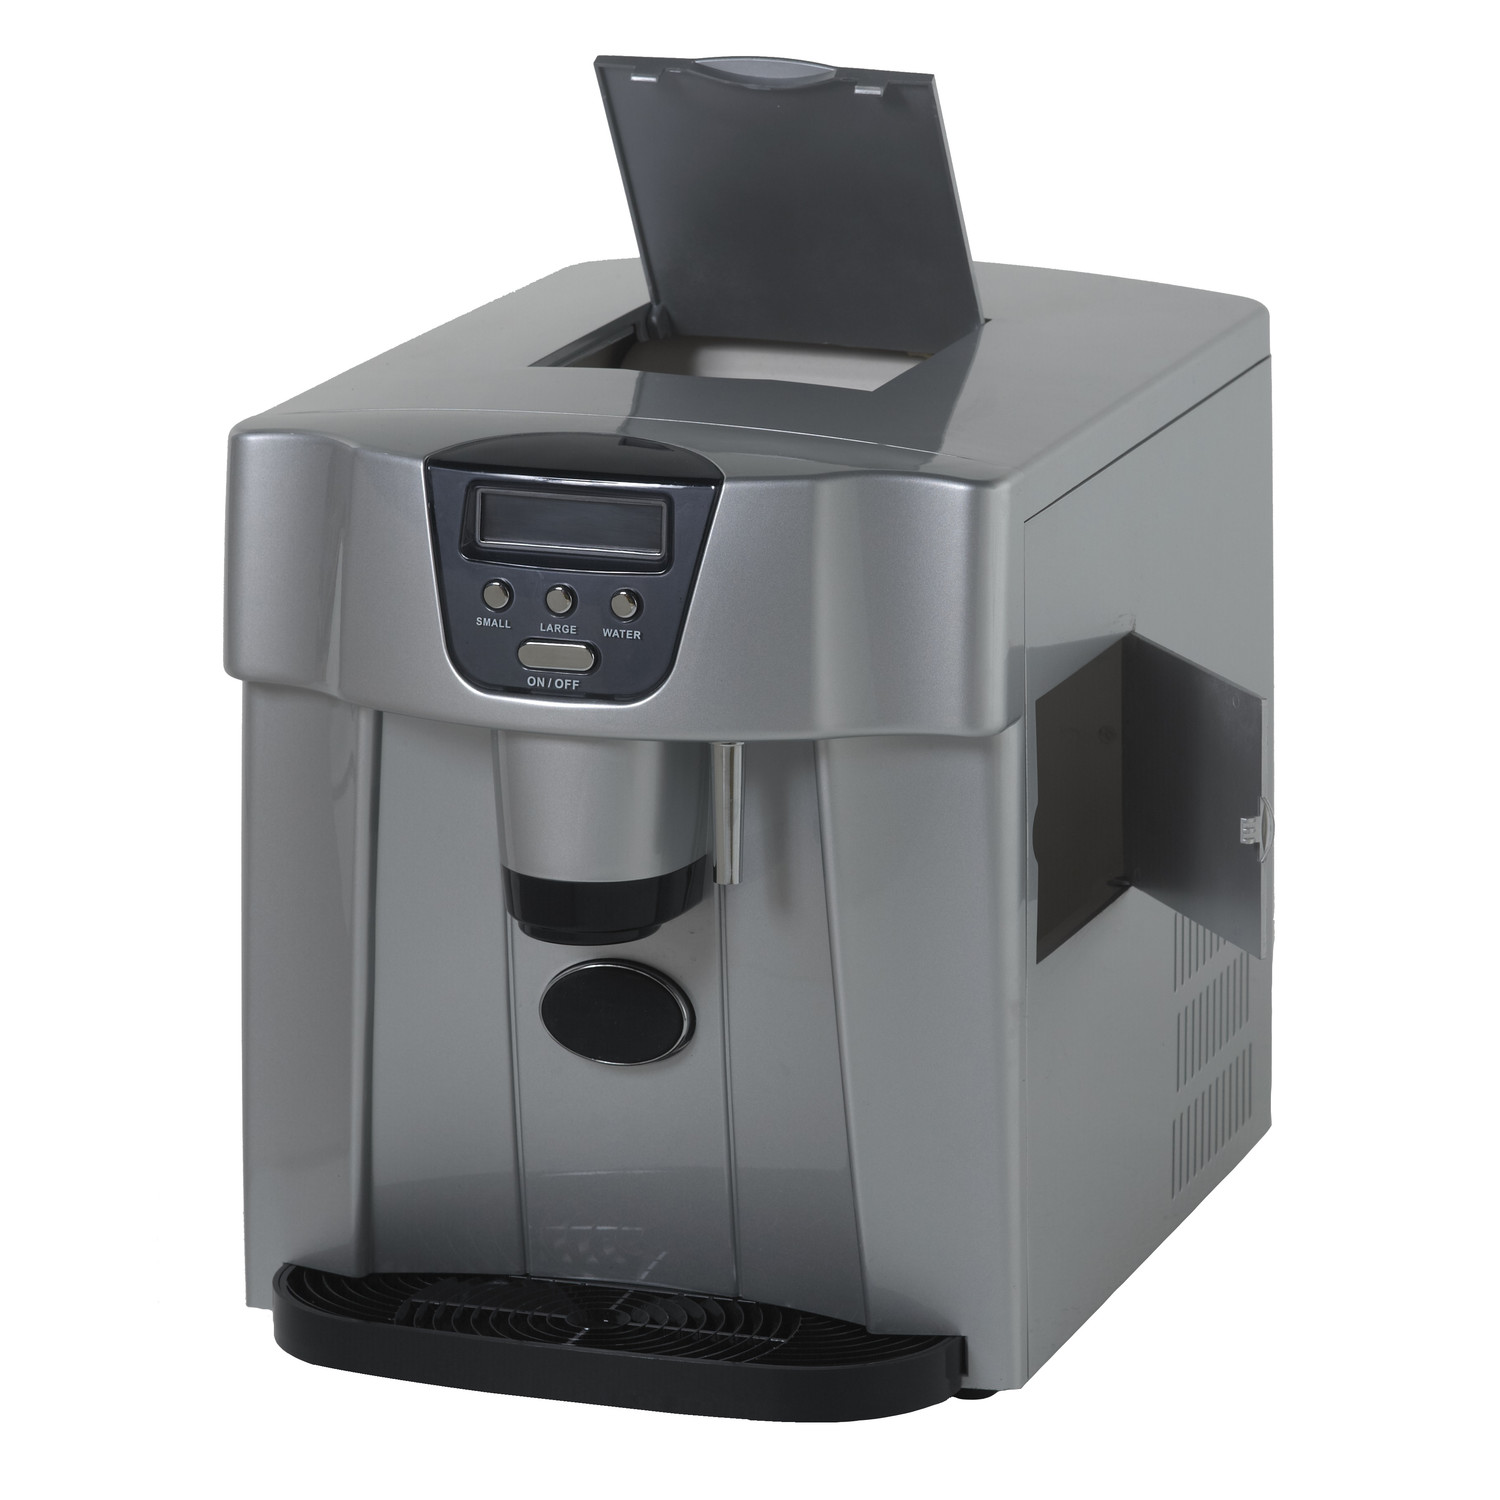 Best Ice Makers & Machines in 2017 - Review of Sleek Undercounter ...